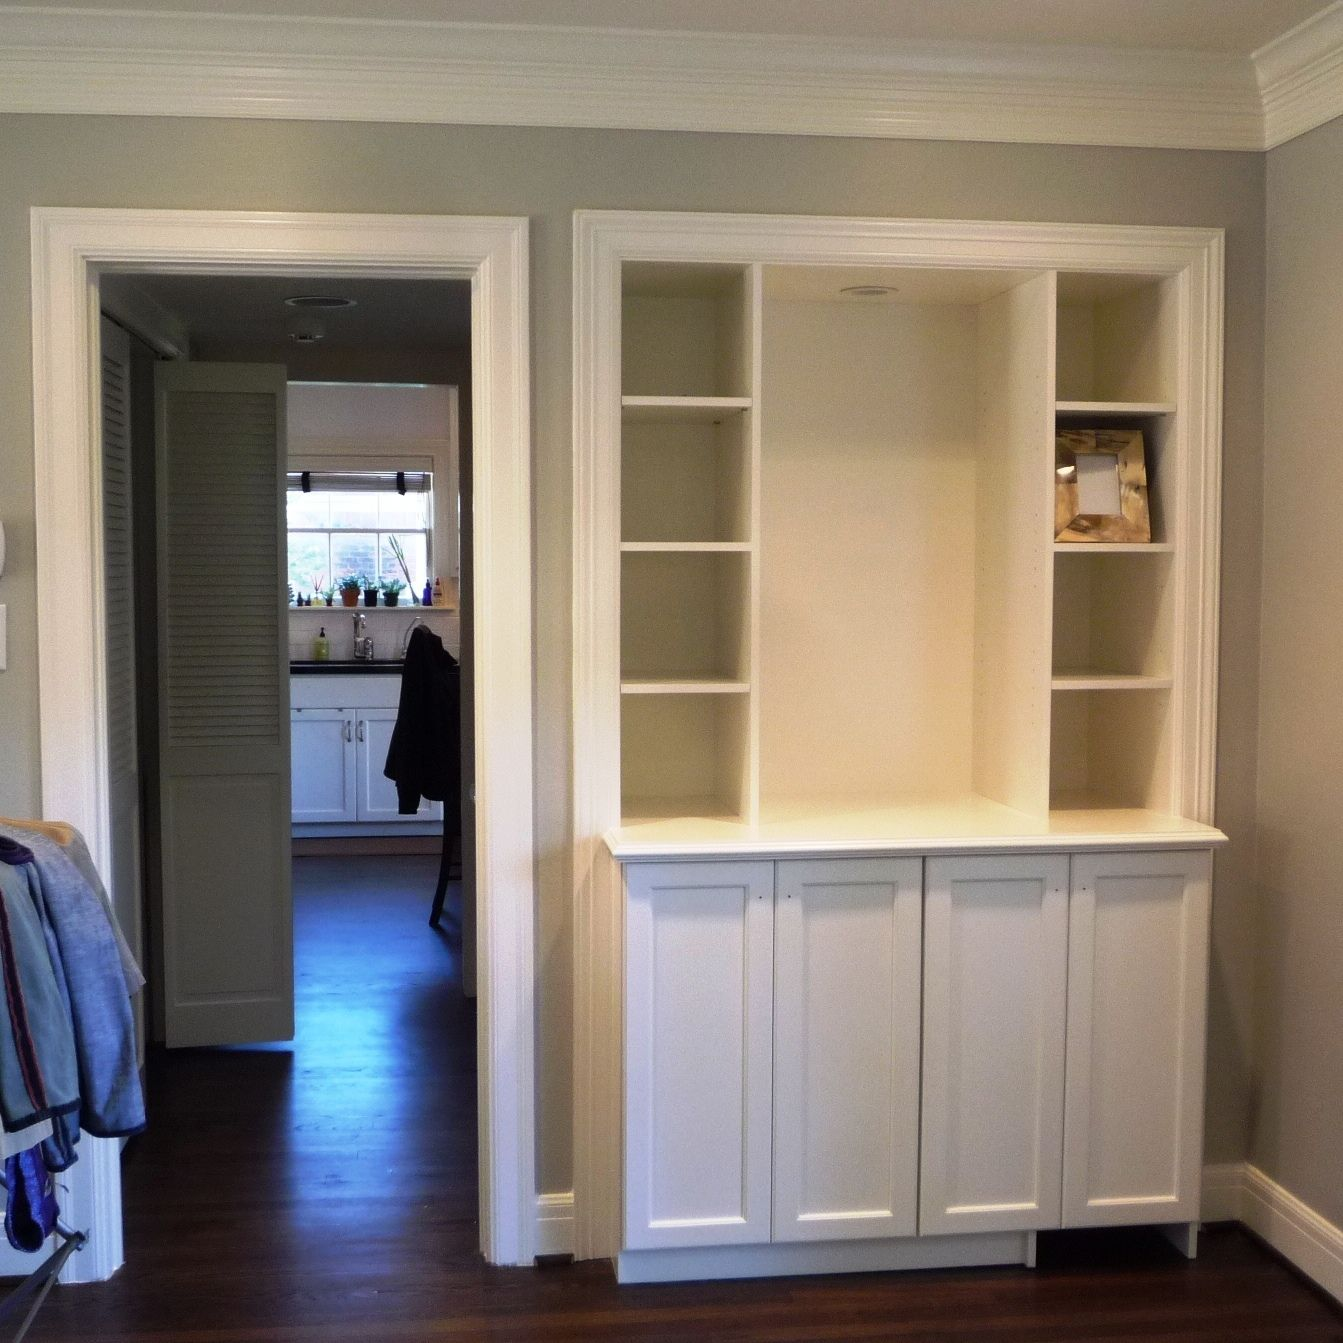 Custom dry bar bookcase built ins installed last week bottom right door has wine fridge - Bar built into wall ...